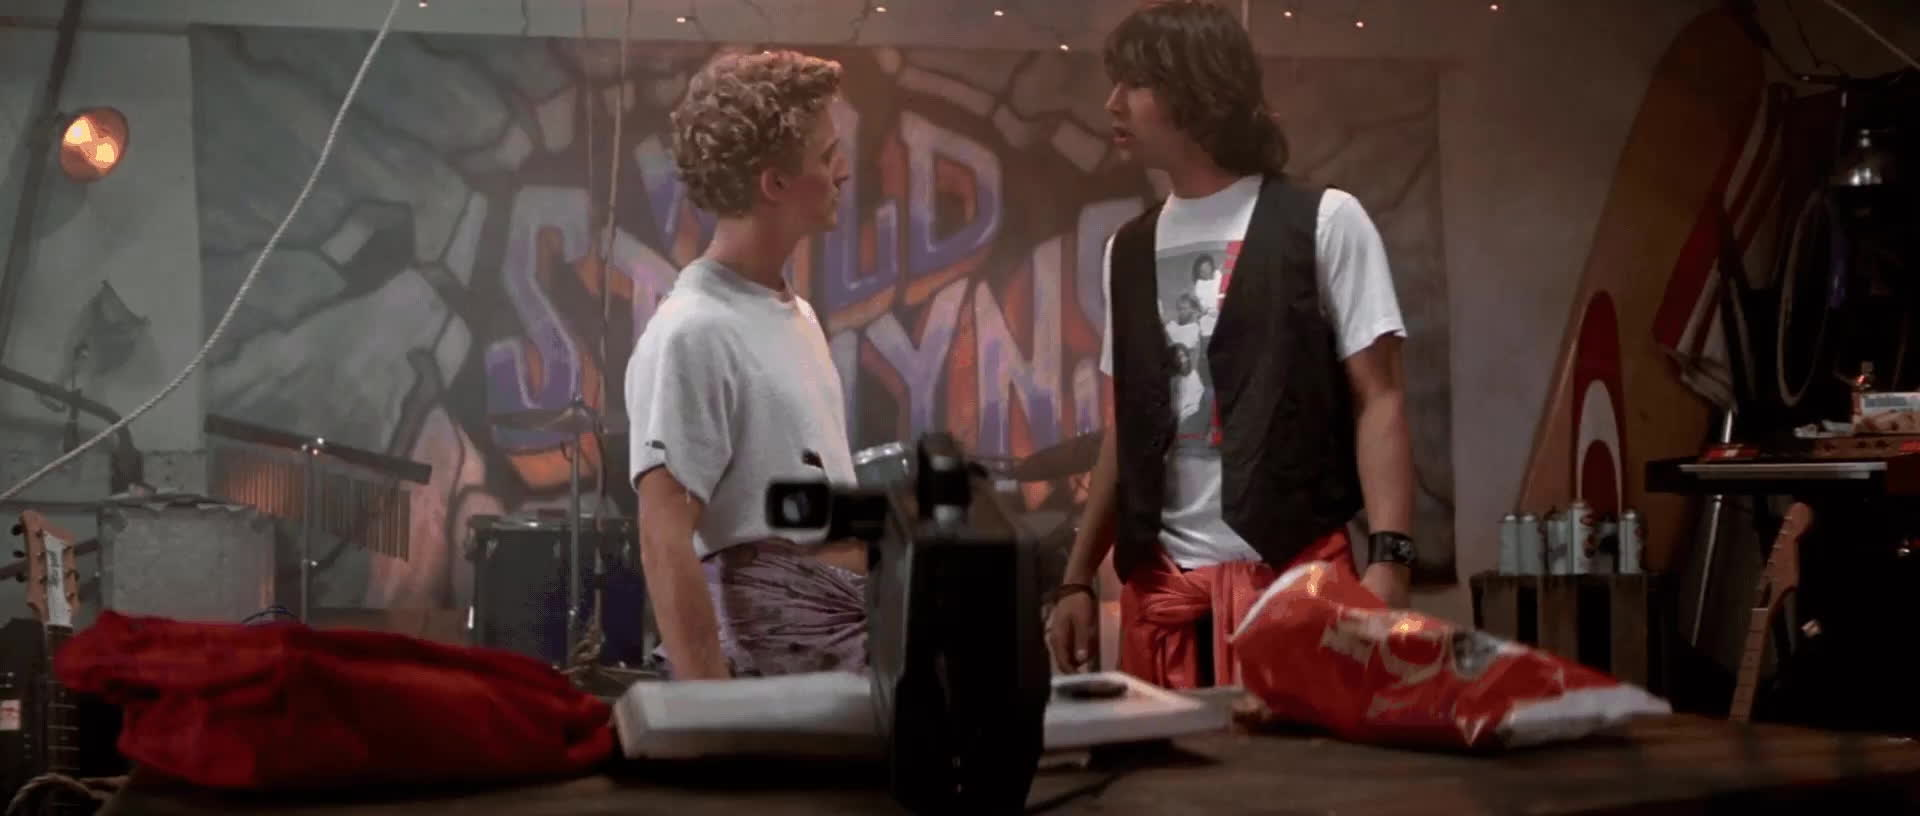 EXCELLENT, Guitar, KeanuReeves, EXCELLENT! [Bill & Ted's Excellent Adventure] Keanu Reeves GIFs